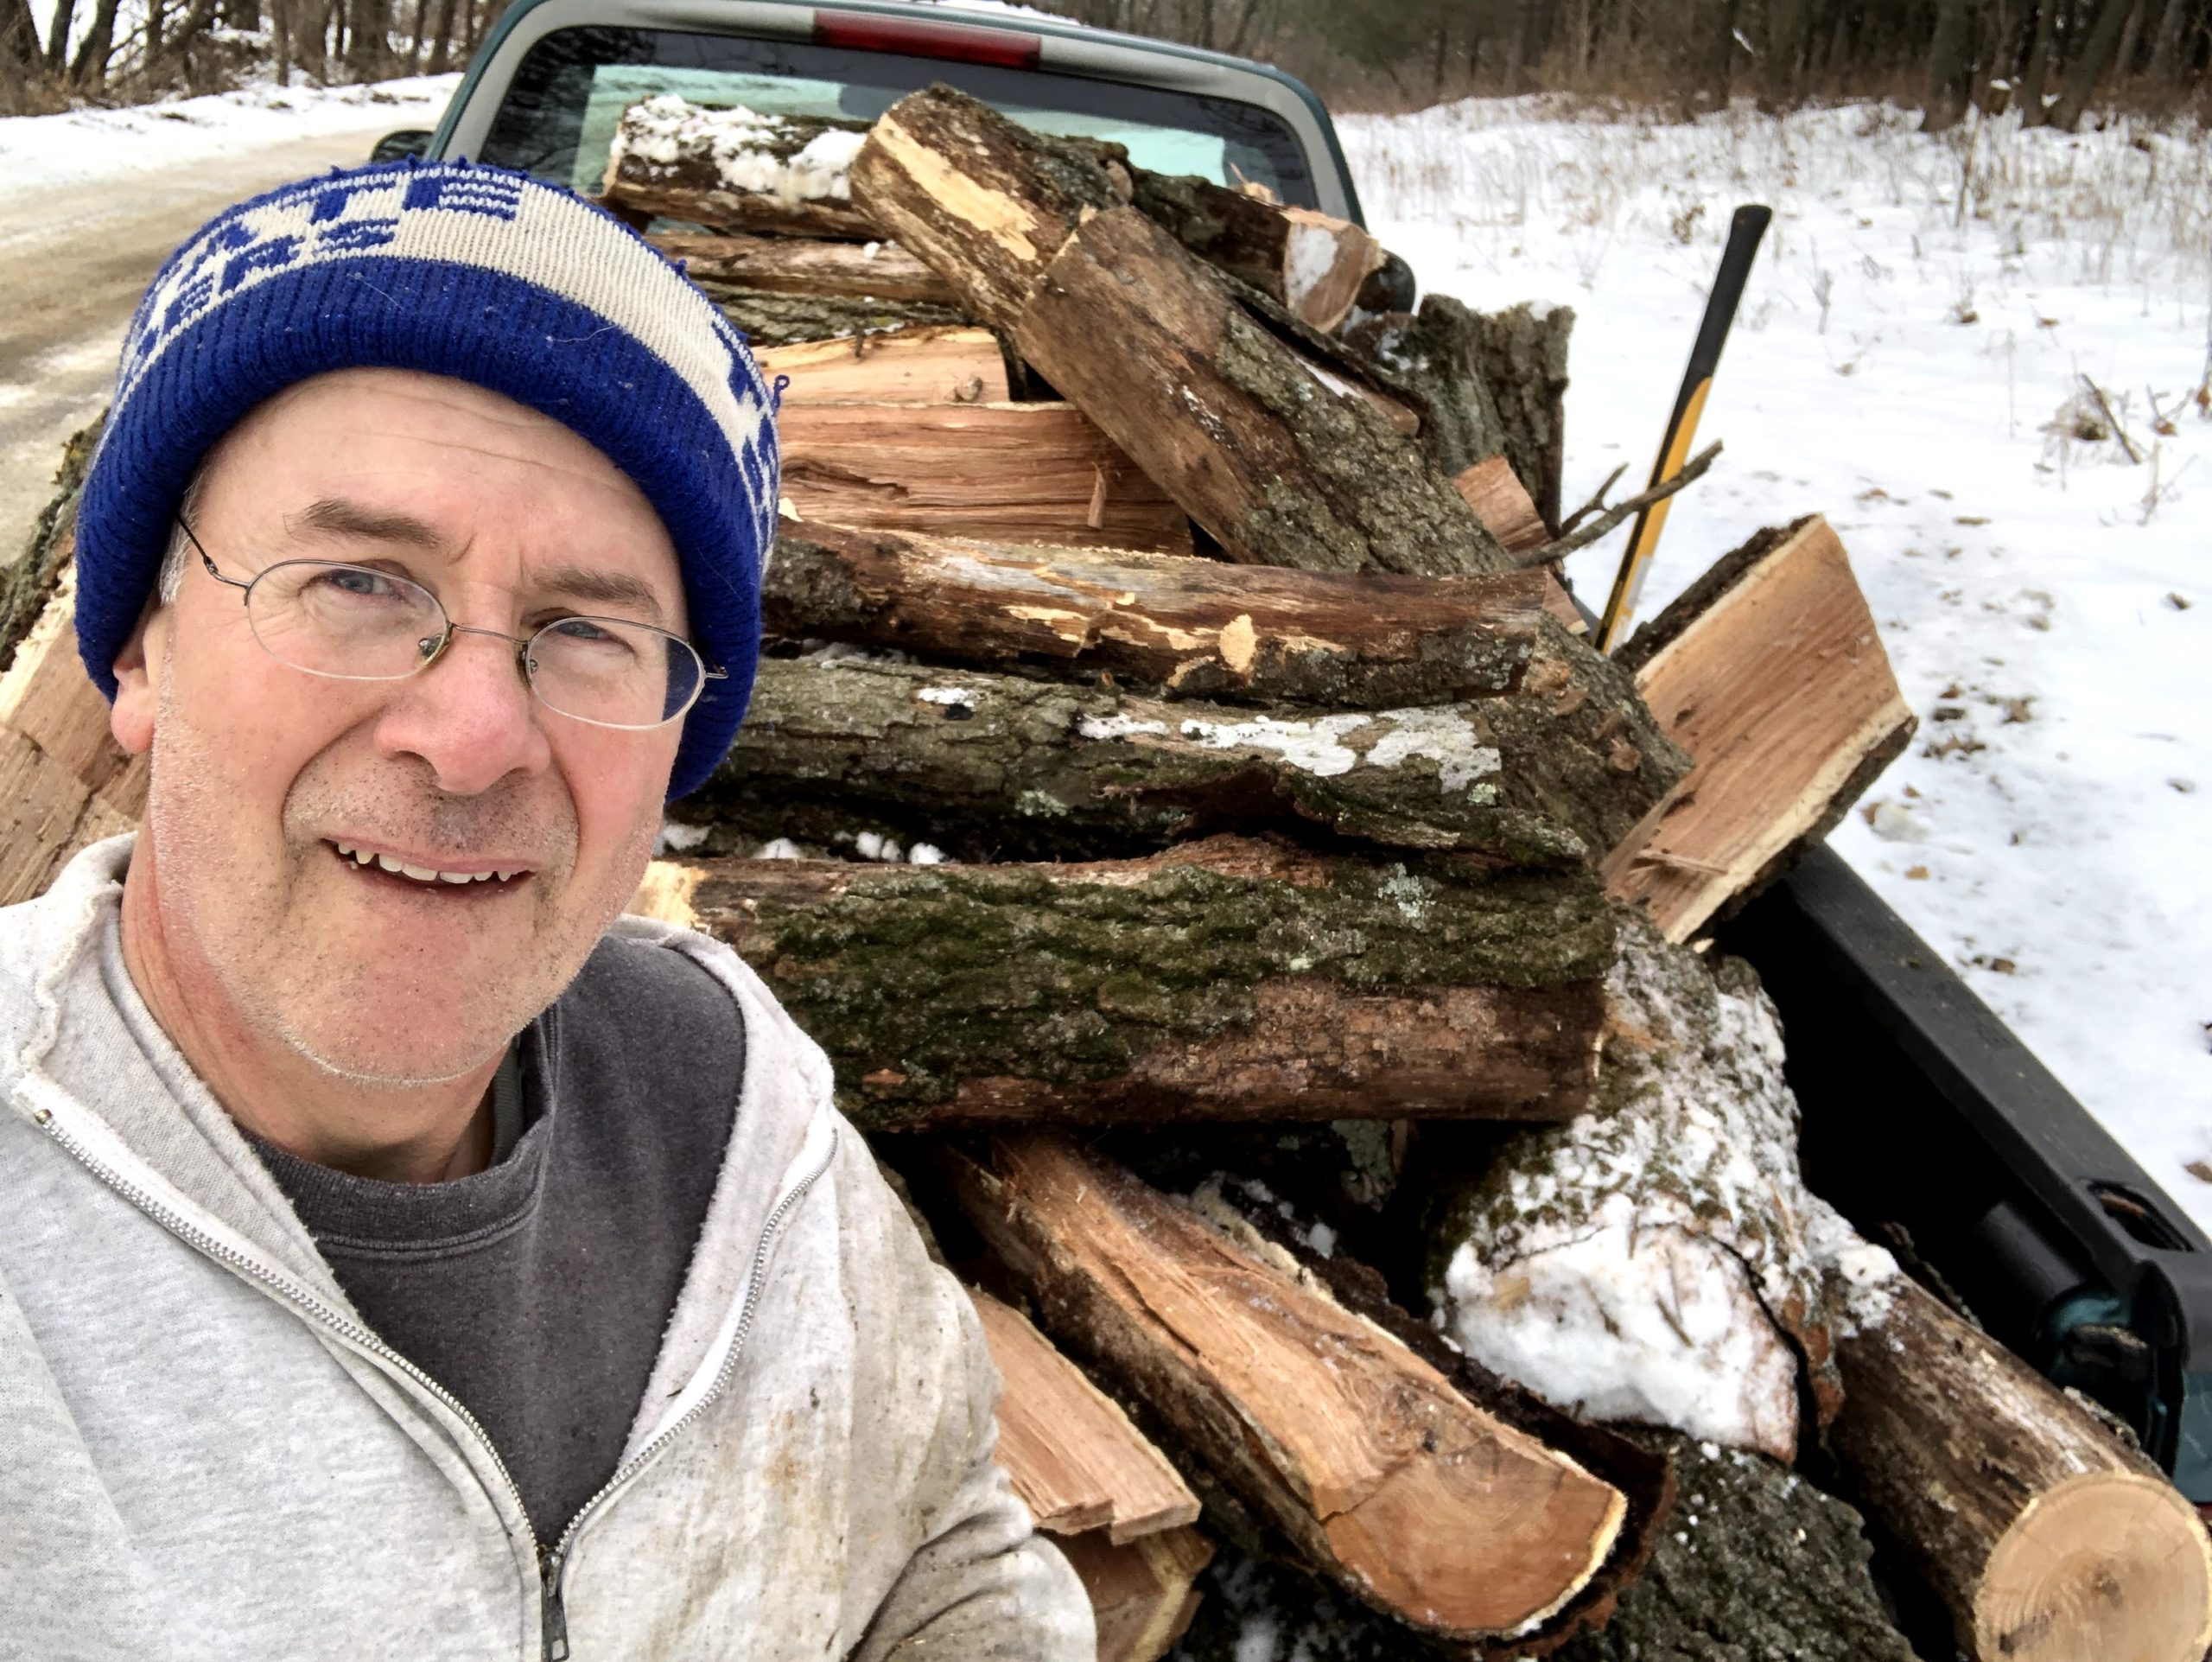 Author Chris Hardie cuts wood all winter to heat his house. (Courtesy of Chris Hardie)